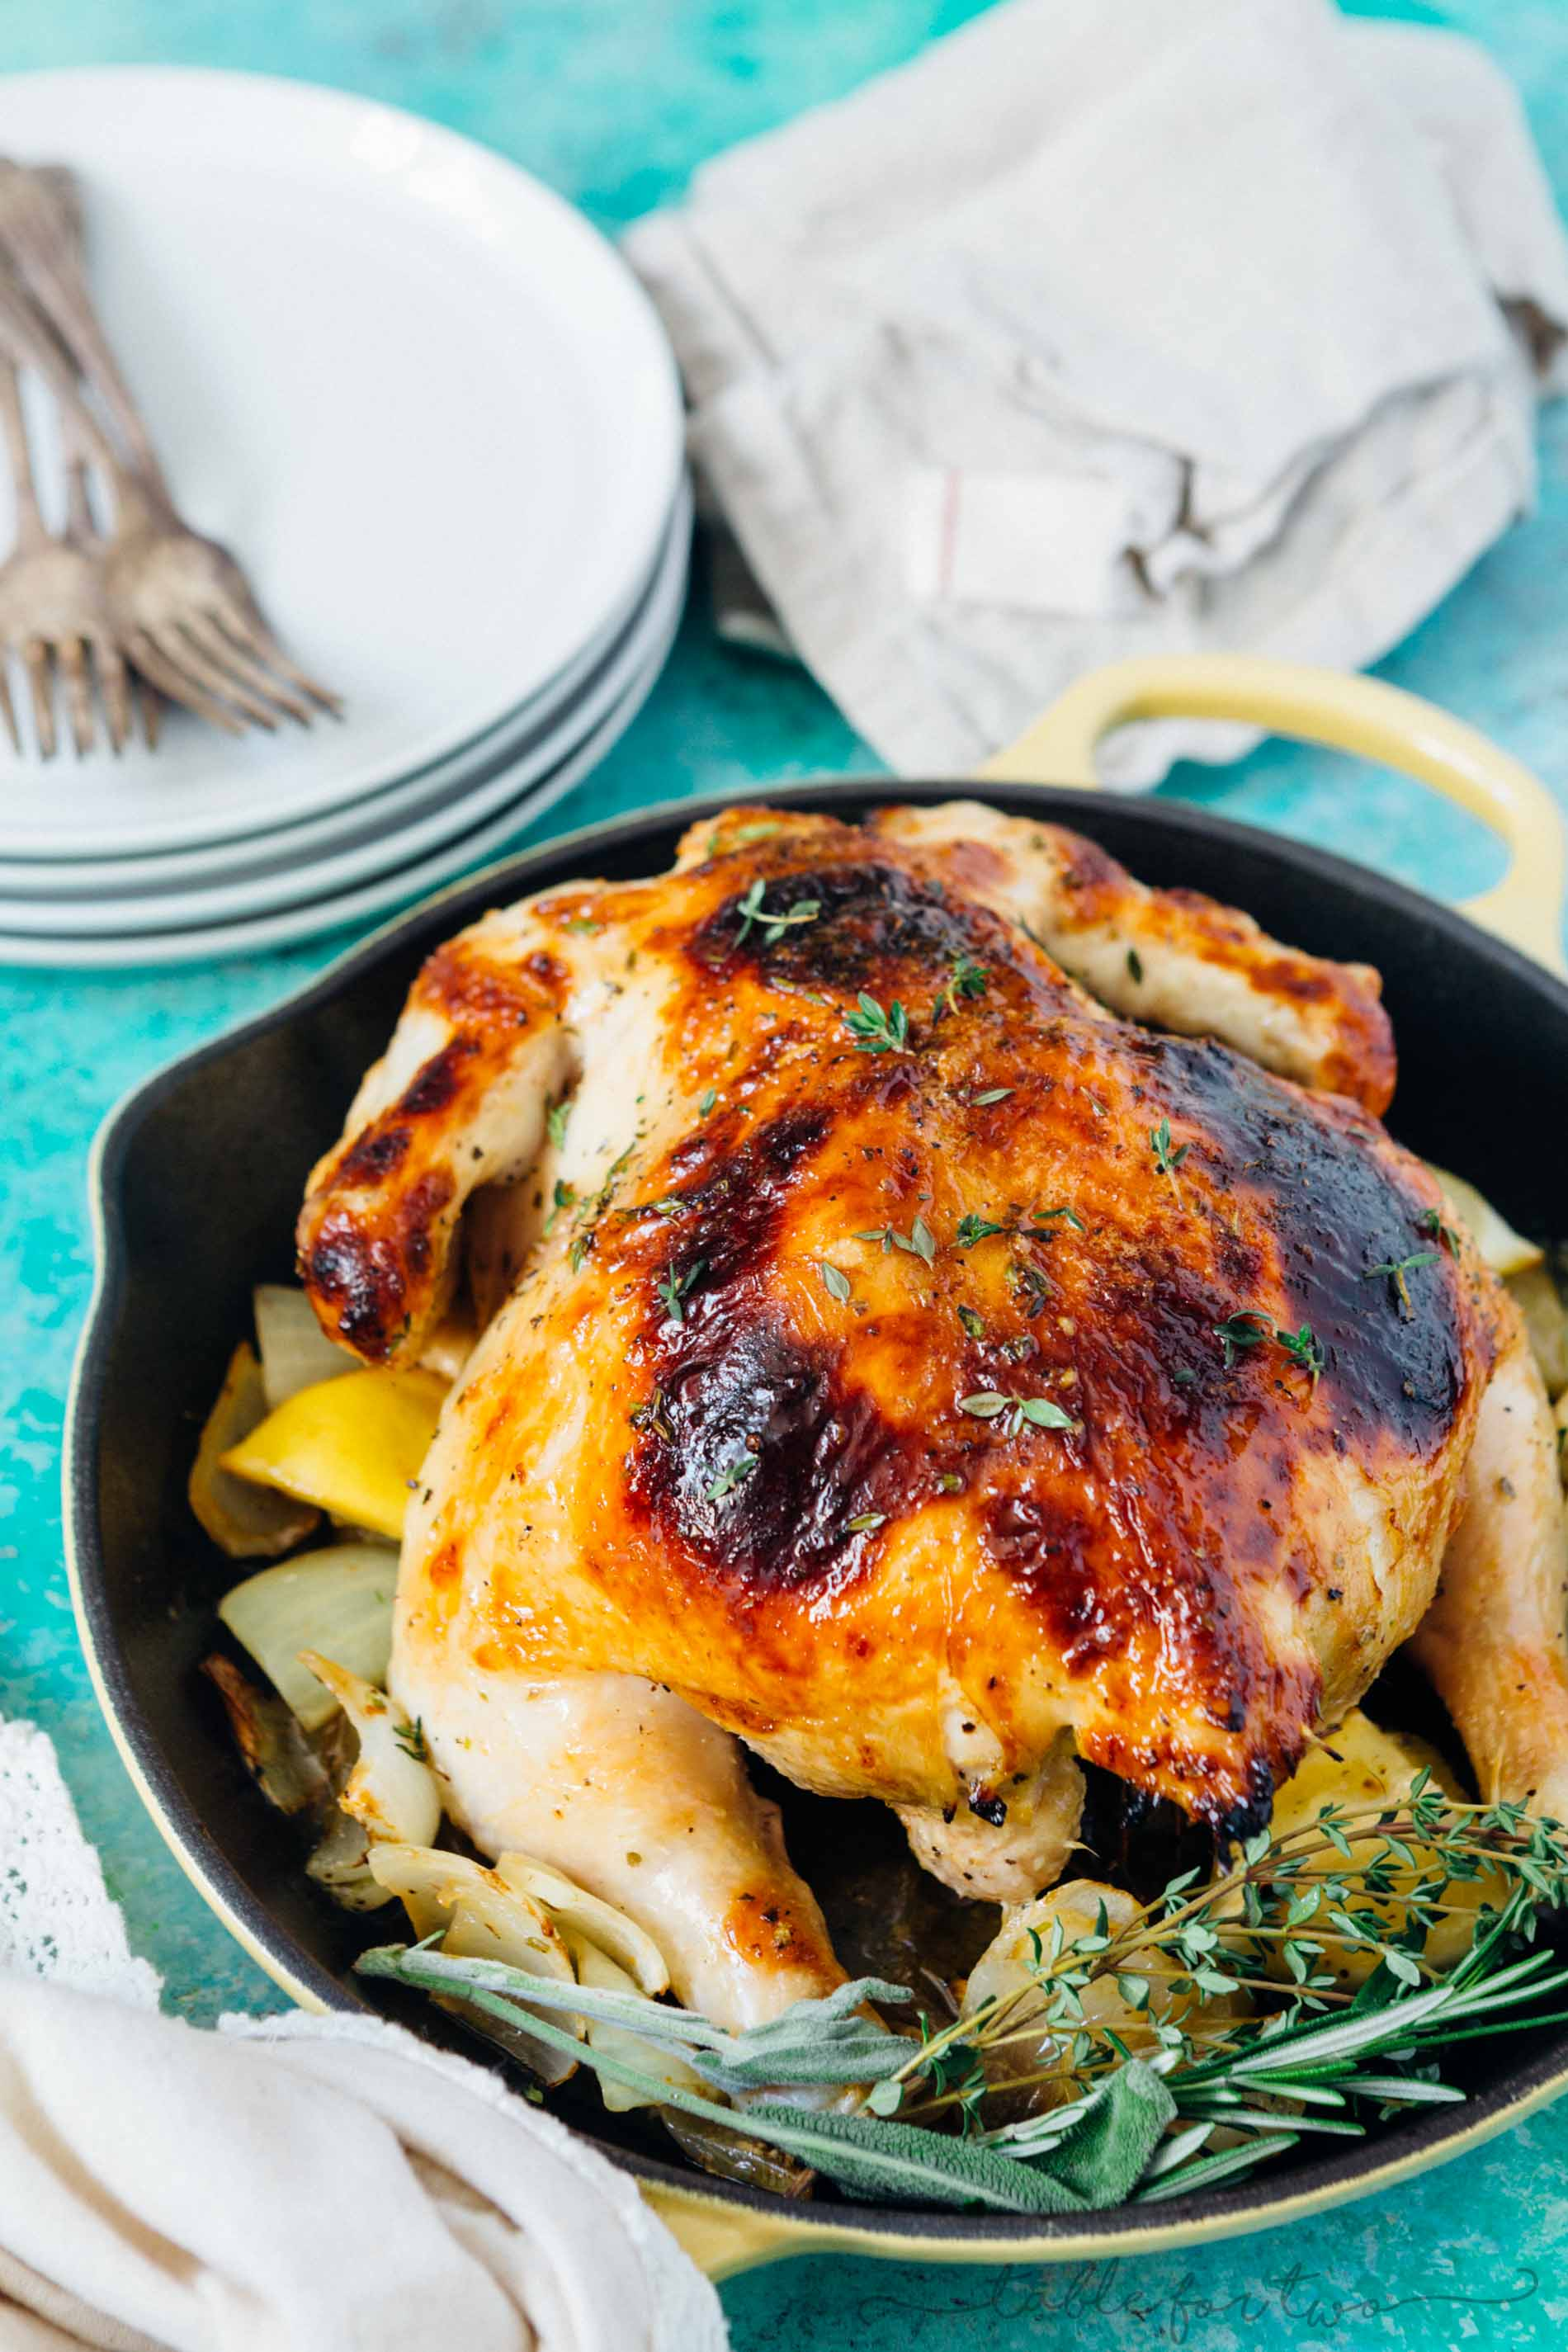 pressure-cooker-roasted-chicken-recipe-photos-tablefortwoblog-3.jpg